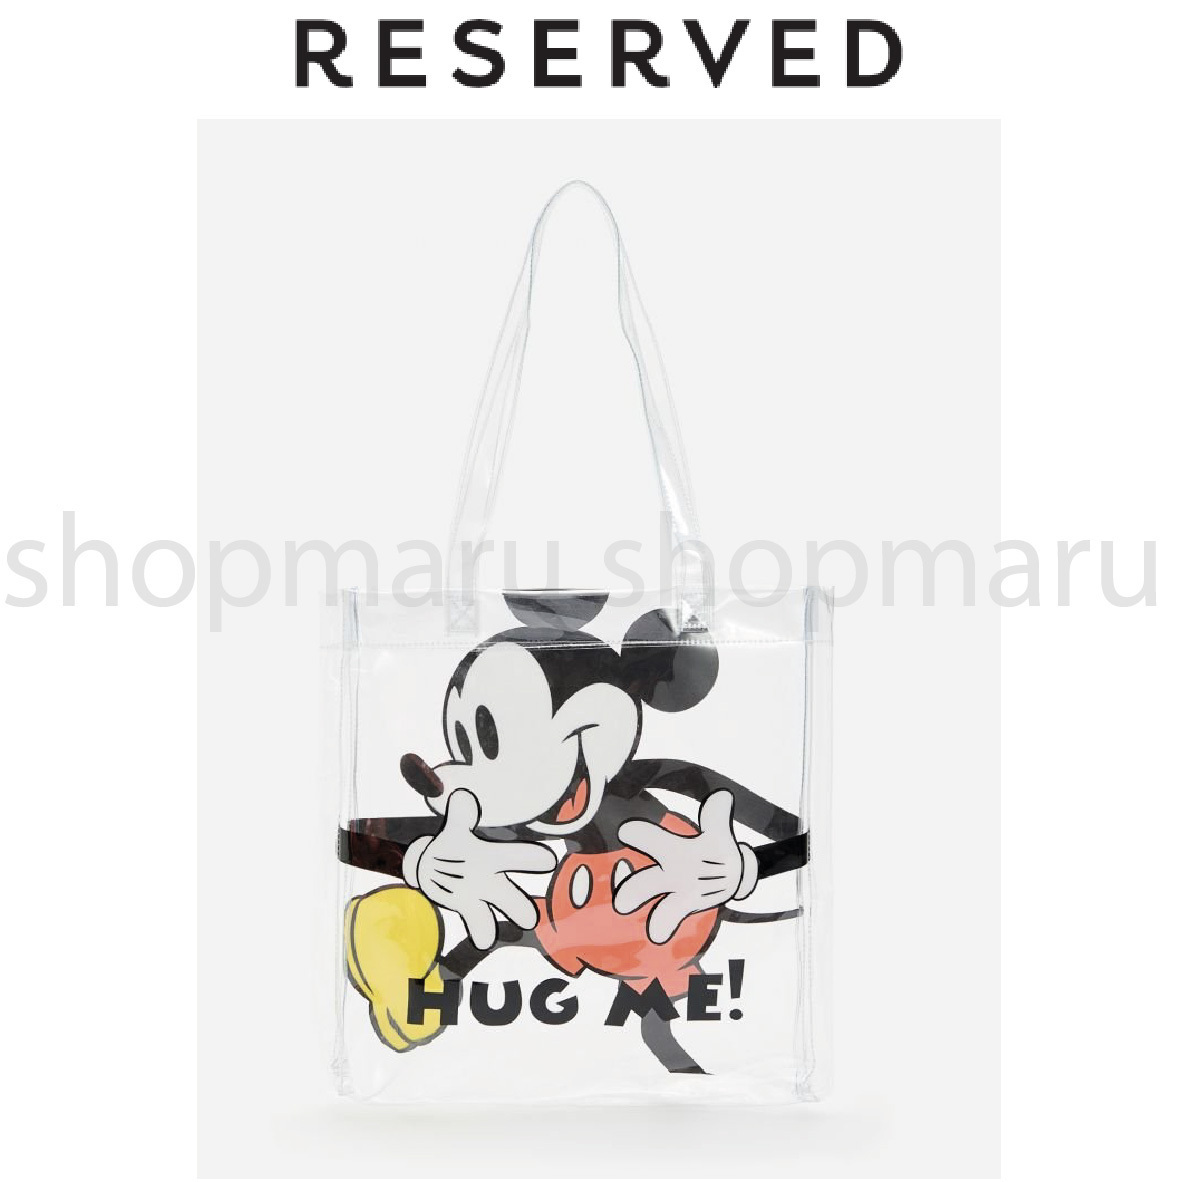 shop reserved bags